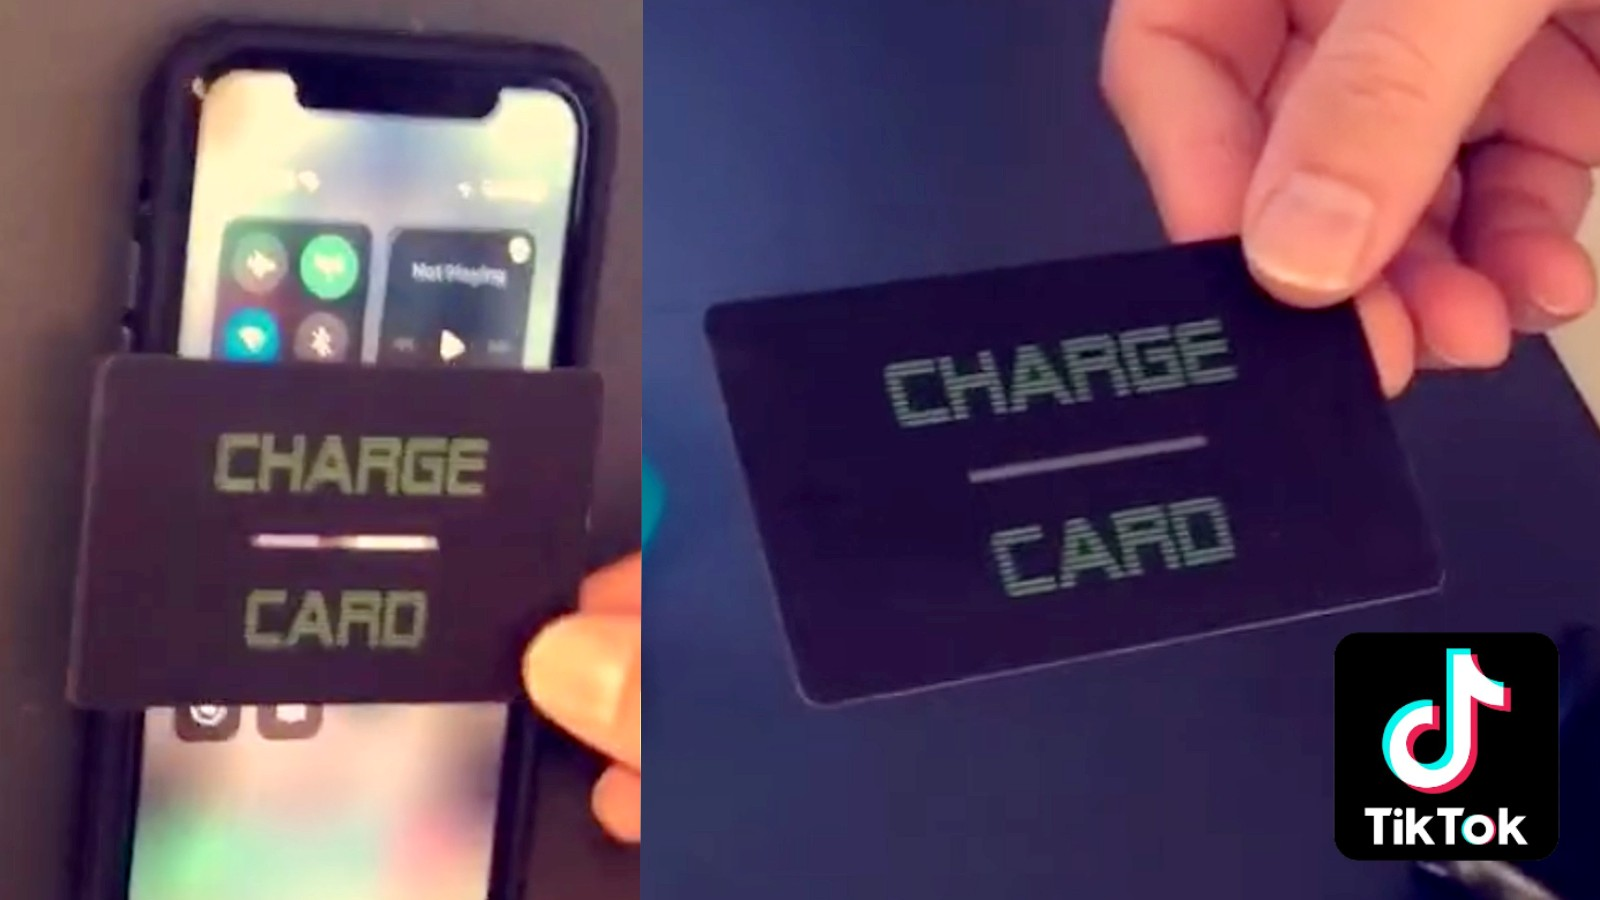 TikTok 'Charge Card' pressed against a phone